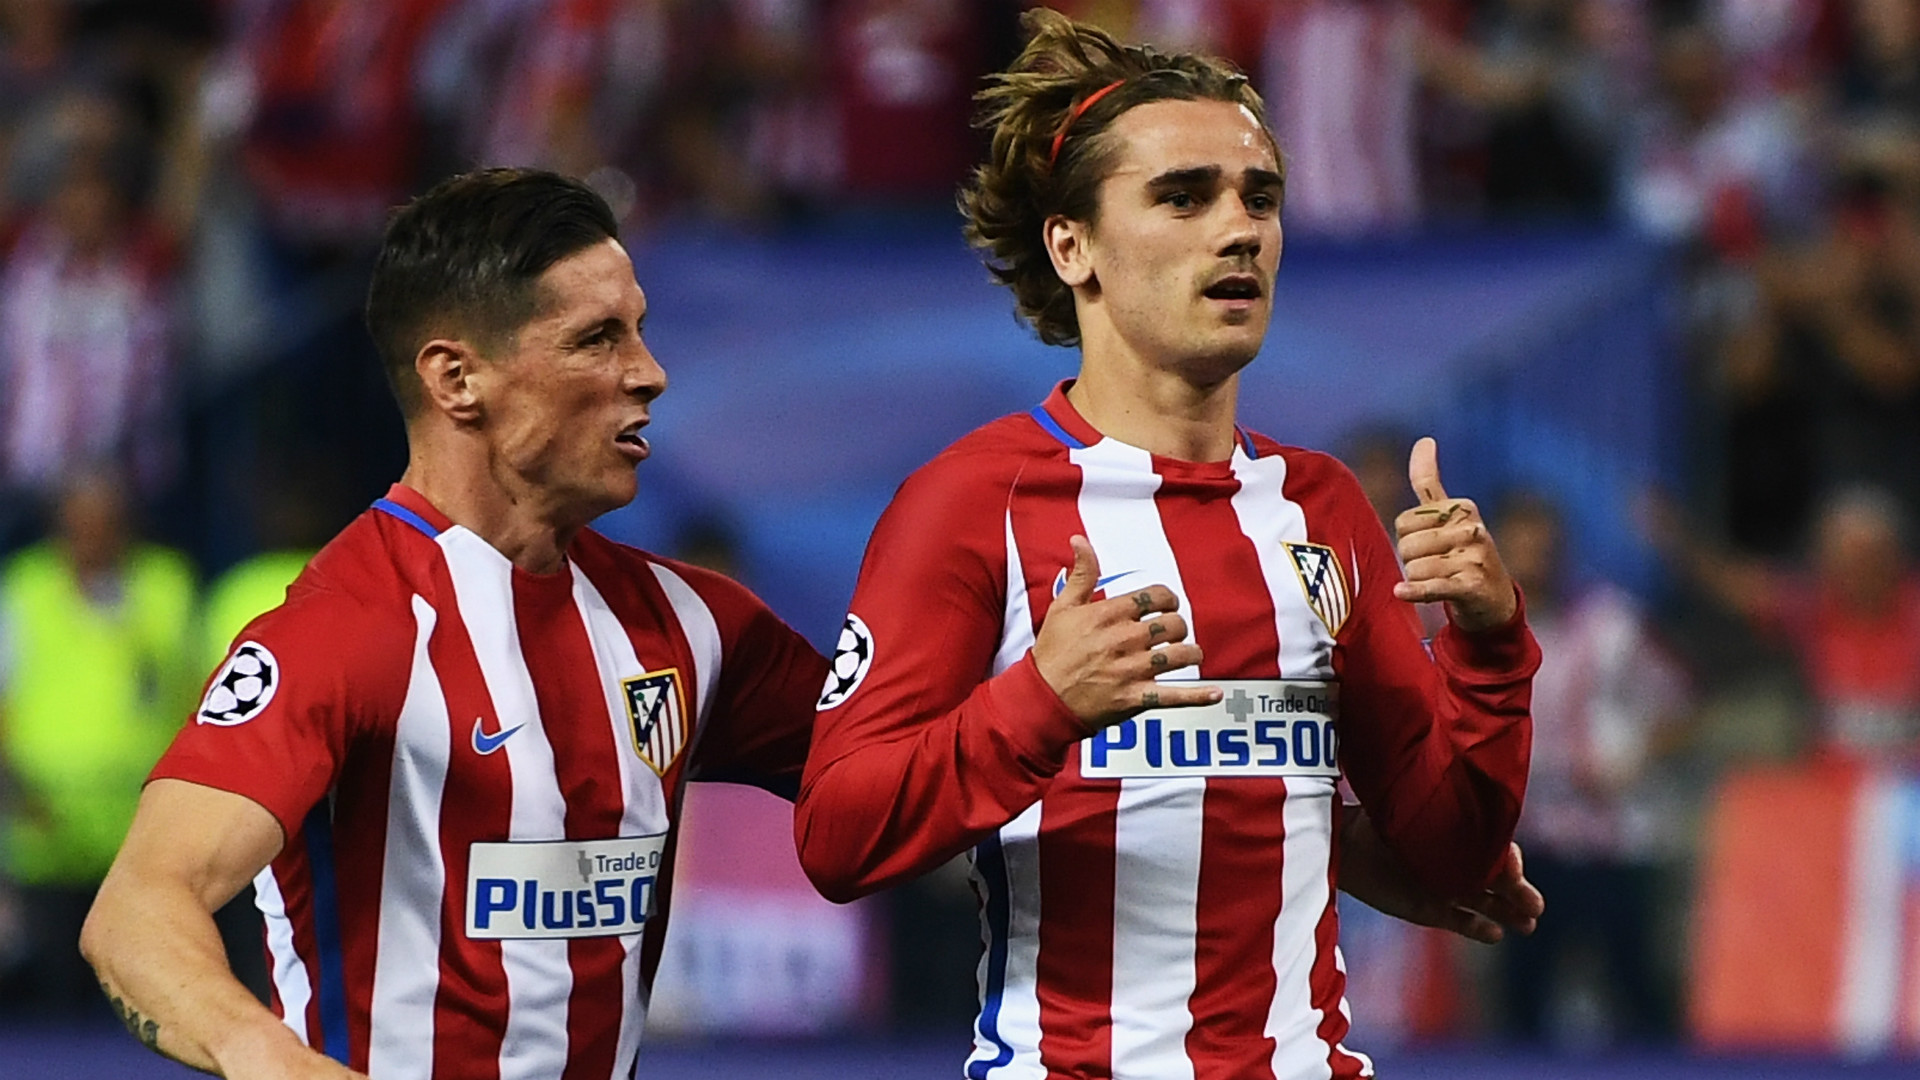 Griezmann wouldn't get in Madrid team, says Jese